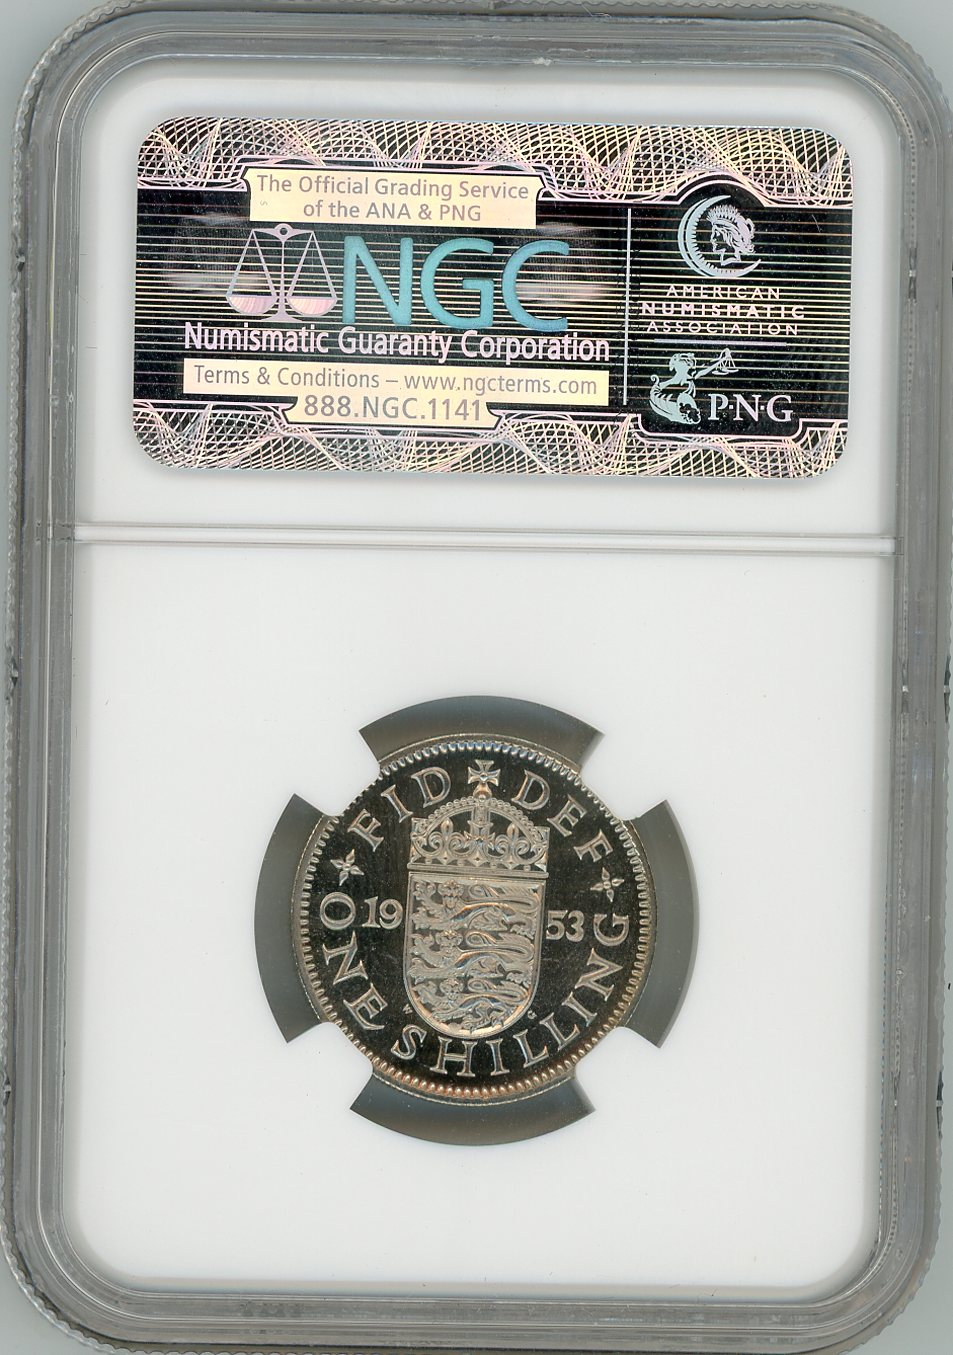 Thumbnail for 1953 UK Proof shilling Slabbed NGC PF64 Cameo